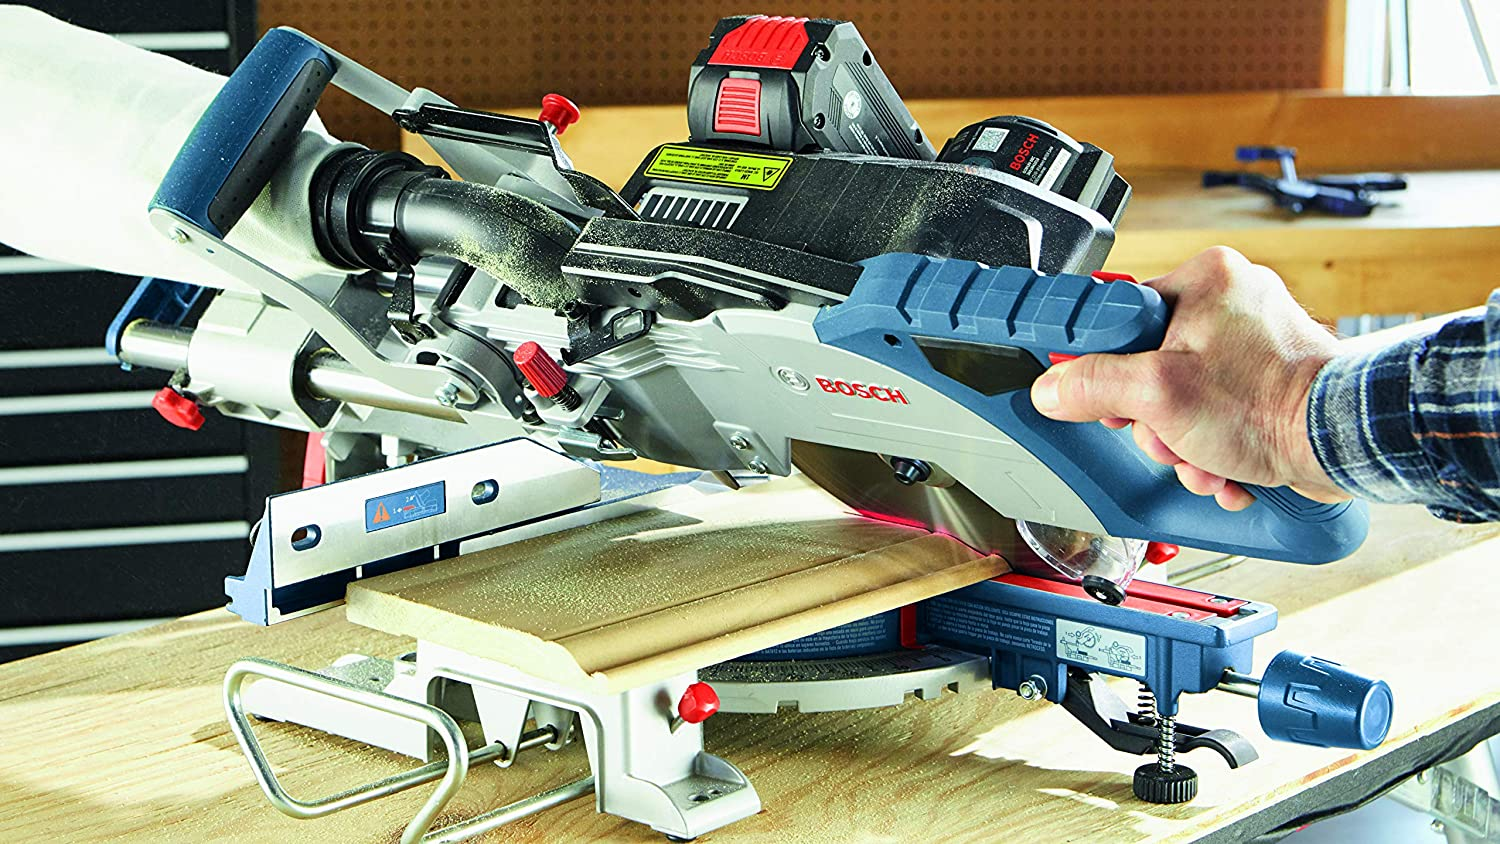 Working with Best Power Miter saw